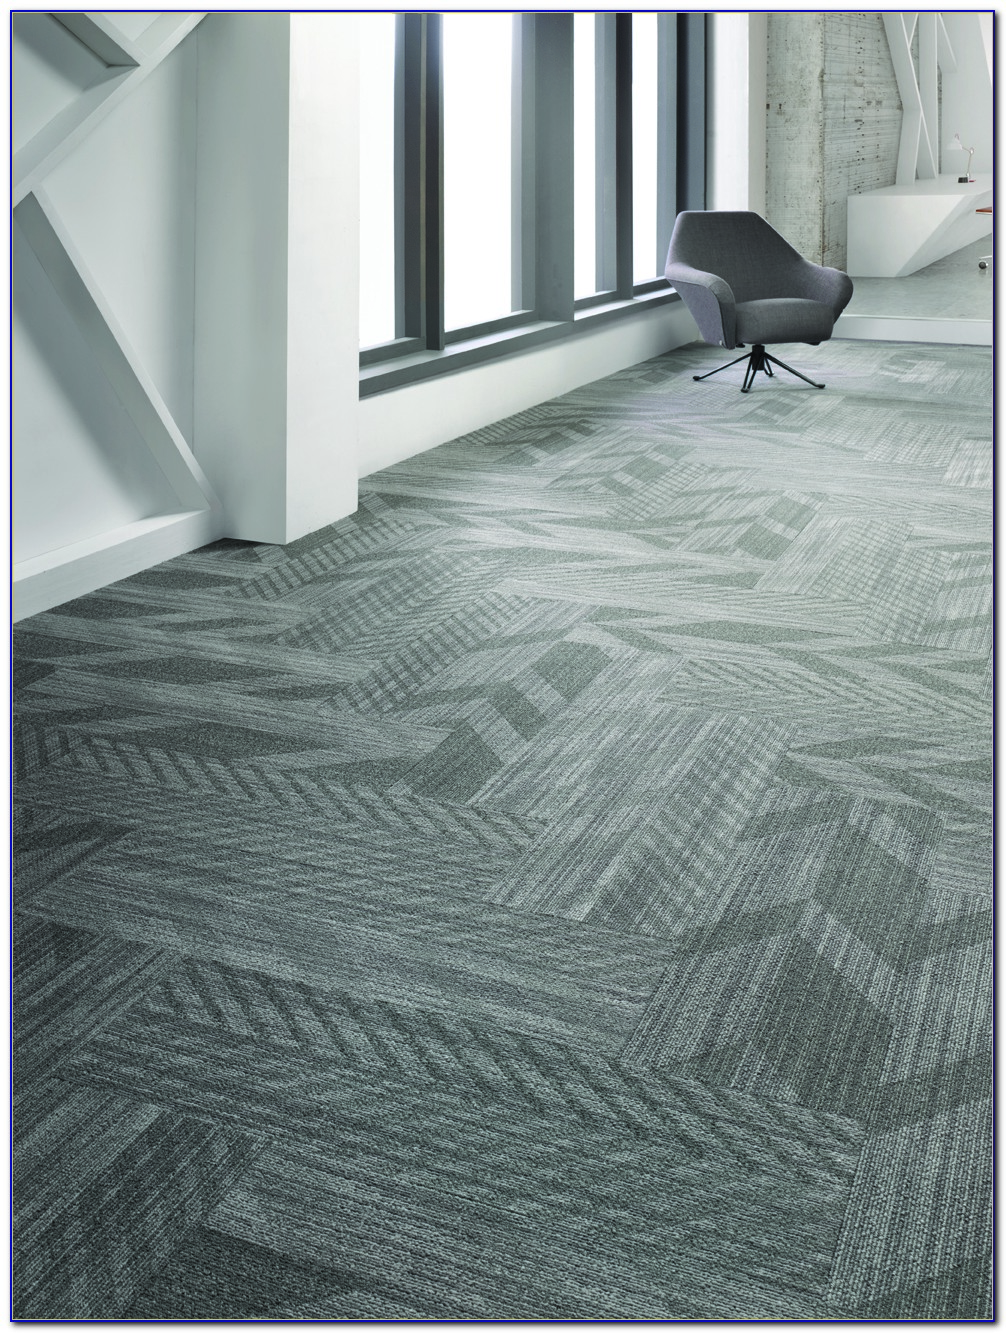 Mohawk Commercial Grade Carpet Tiles